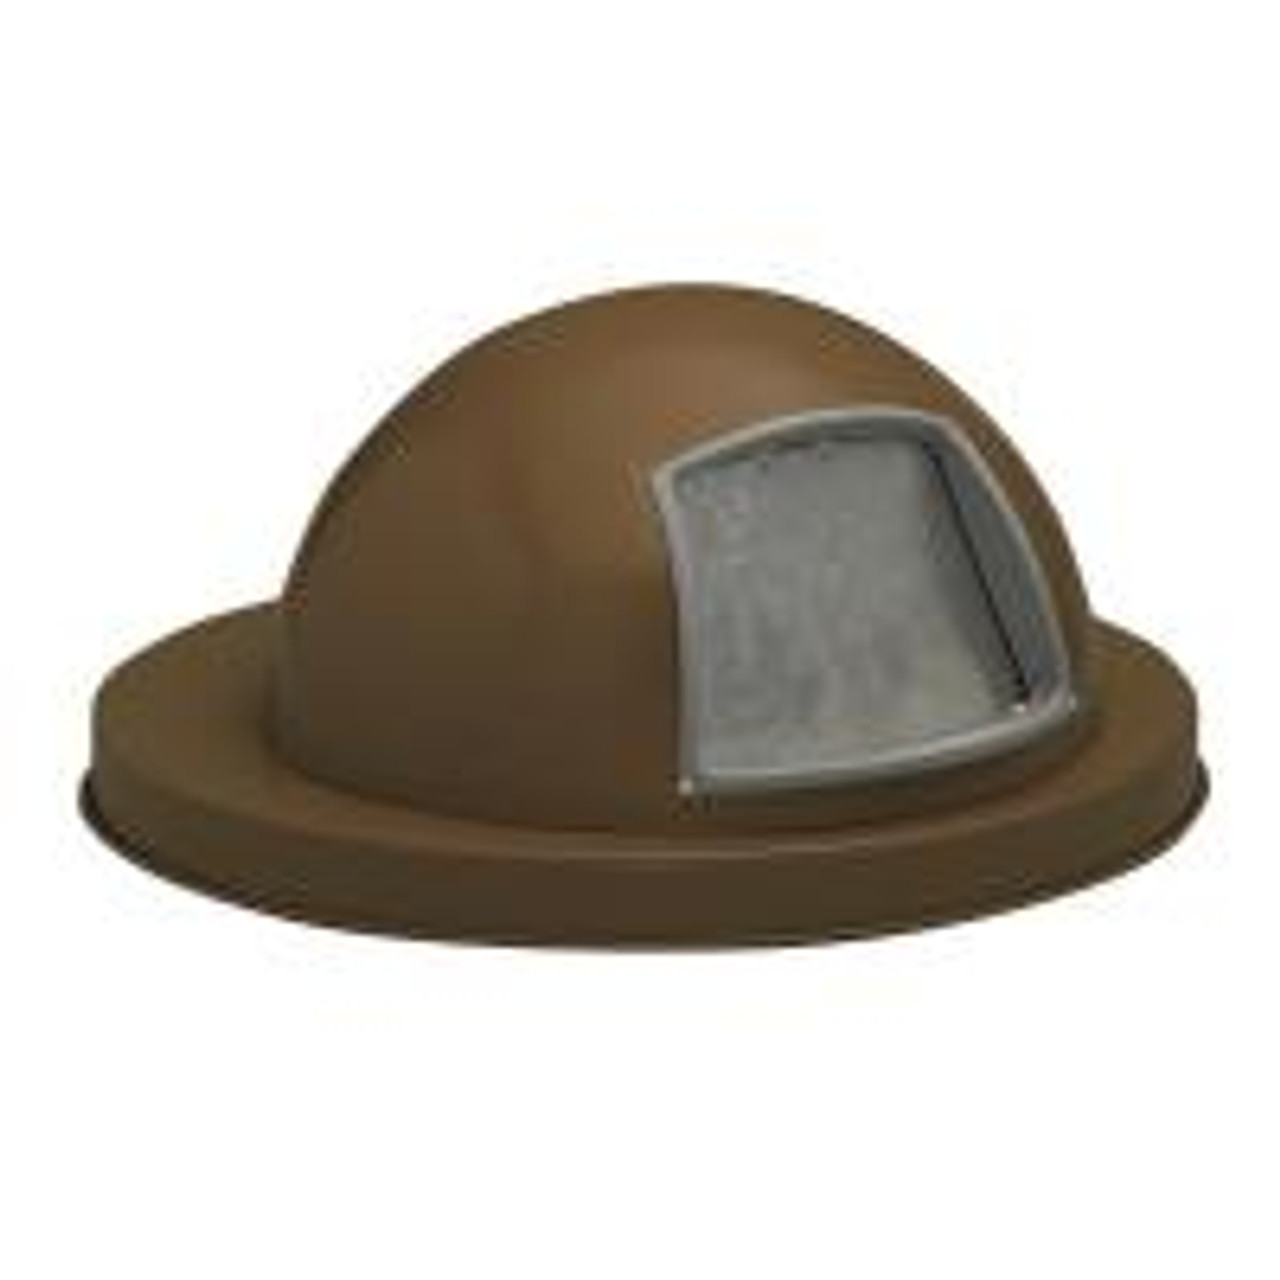 18.75 Inch Painted Metal Dome Lid M2401-DTL-BN